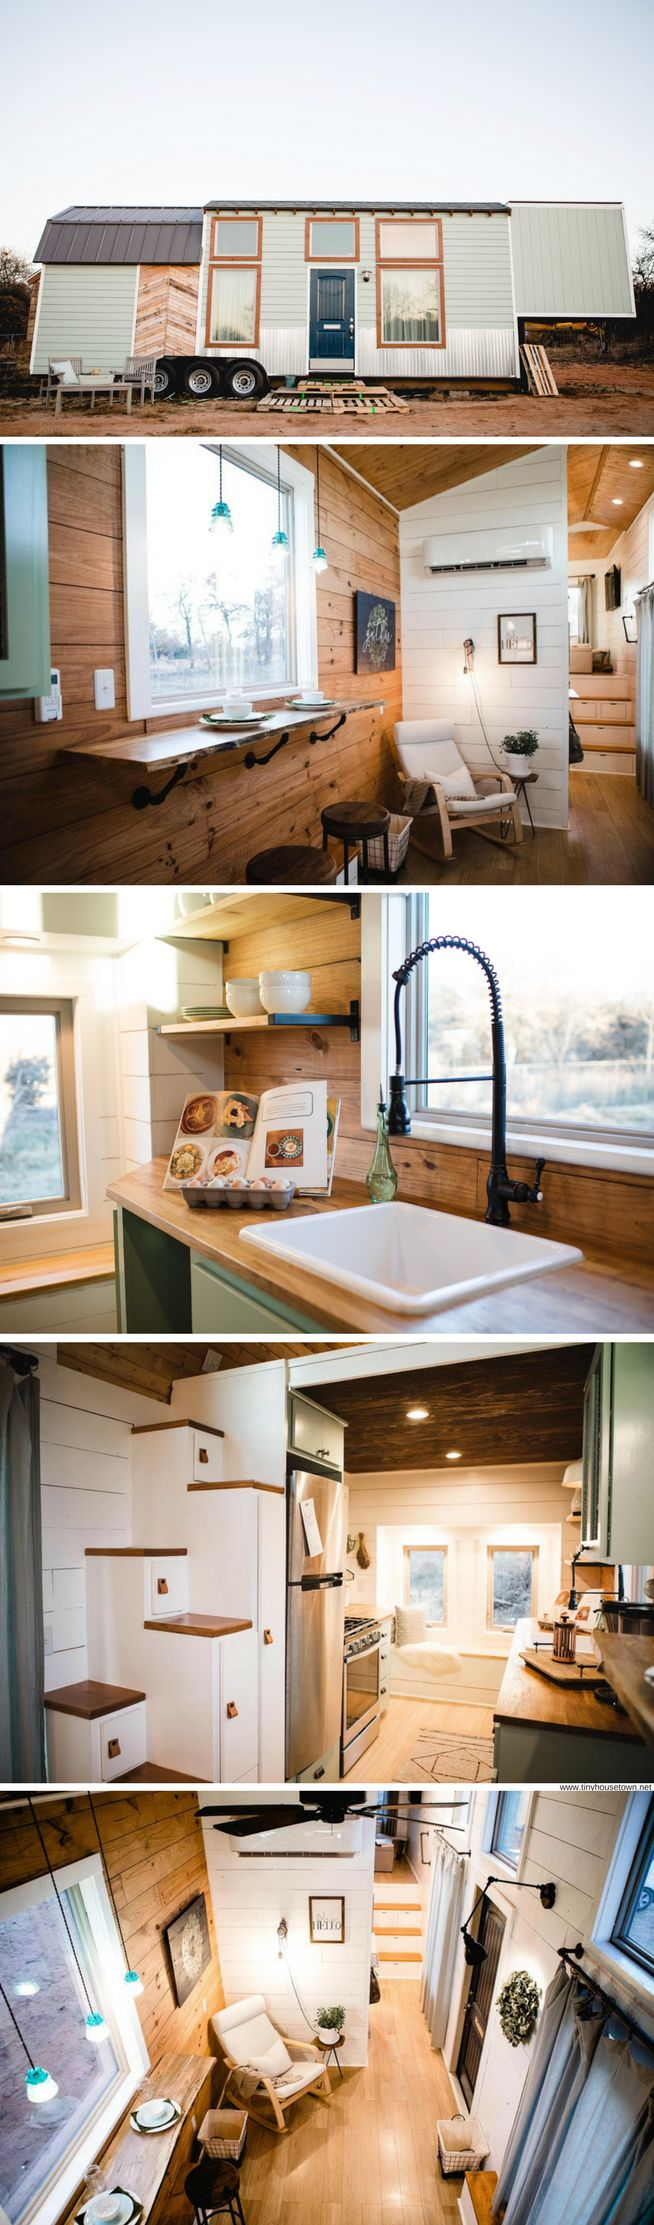 The Molly: a luxury 340-sq-ft tiny house available for sale in Oklahoma City!